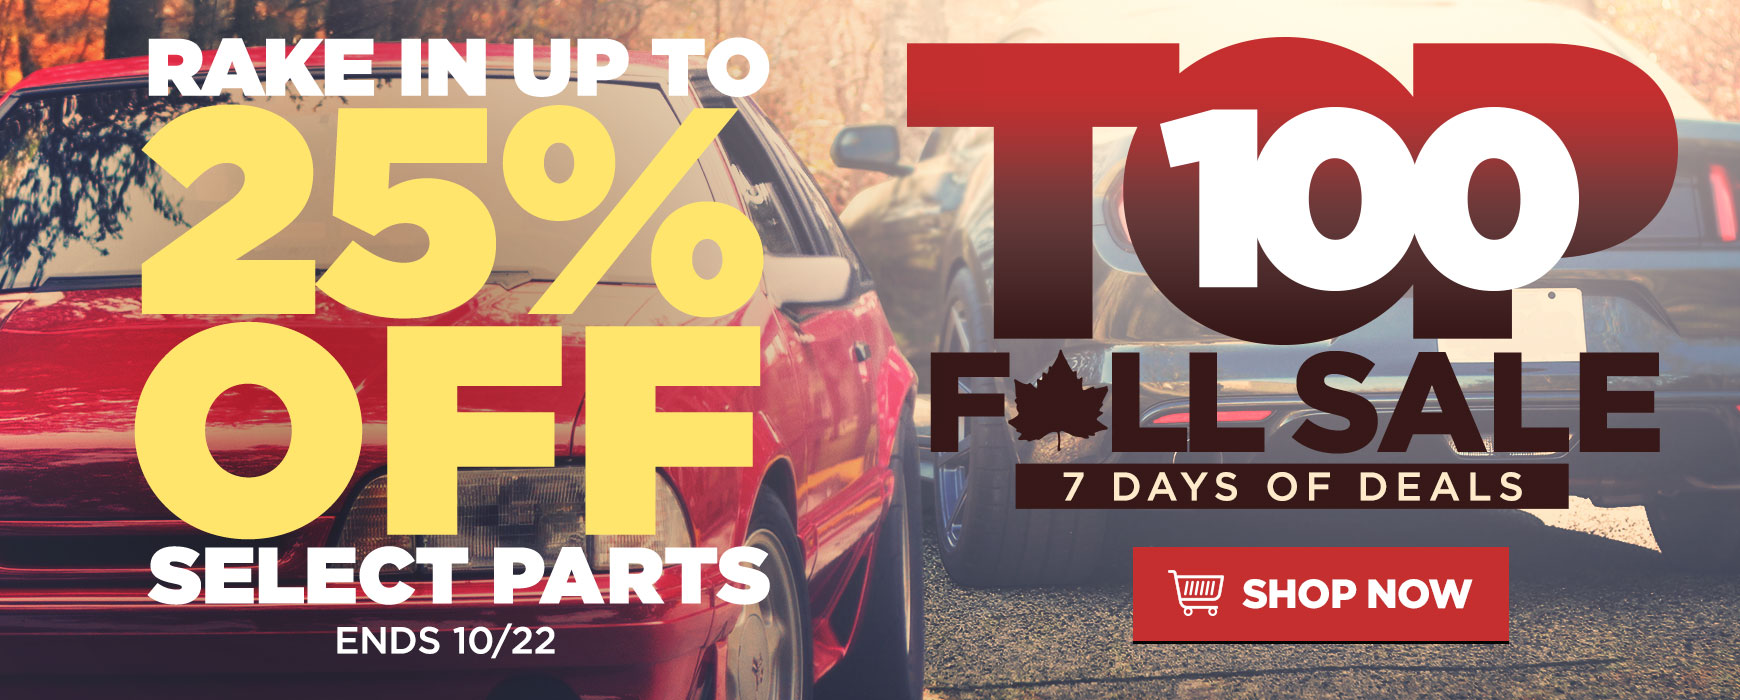 TOP 100 Fall Sale! Up to 25% OFF Select Mustang & Lightning Parts